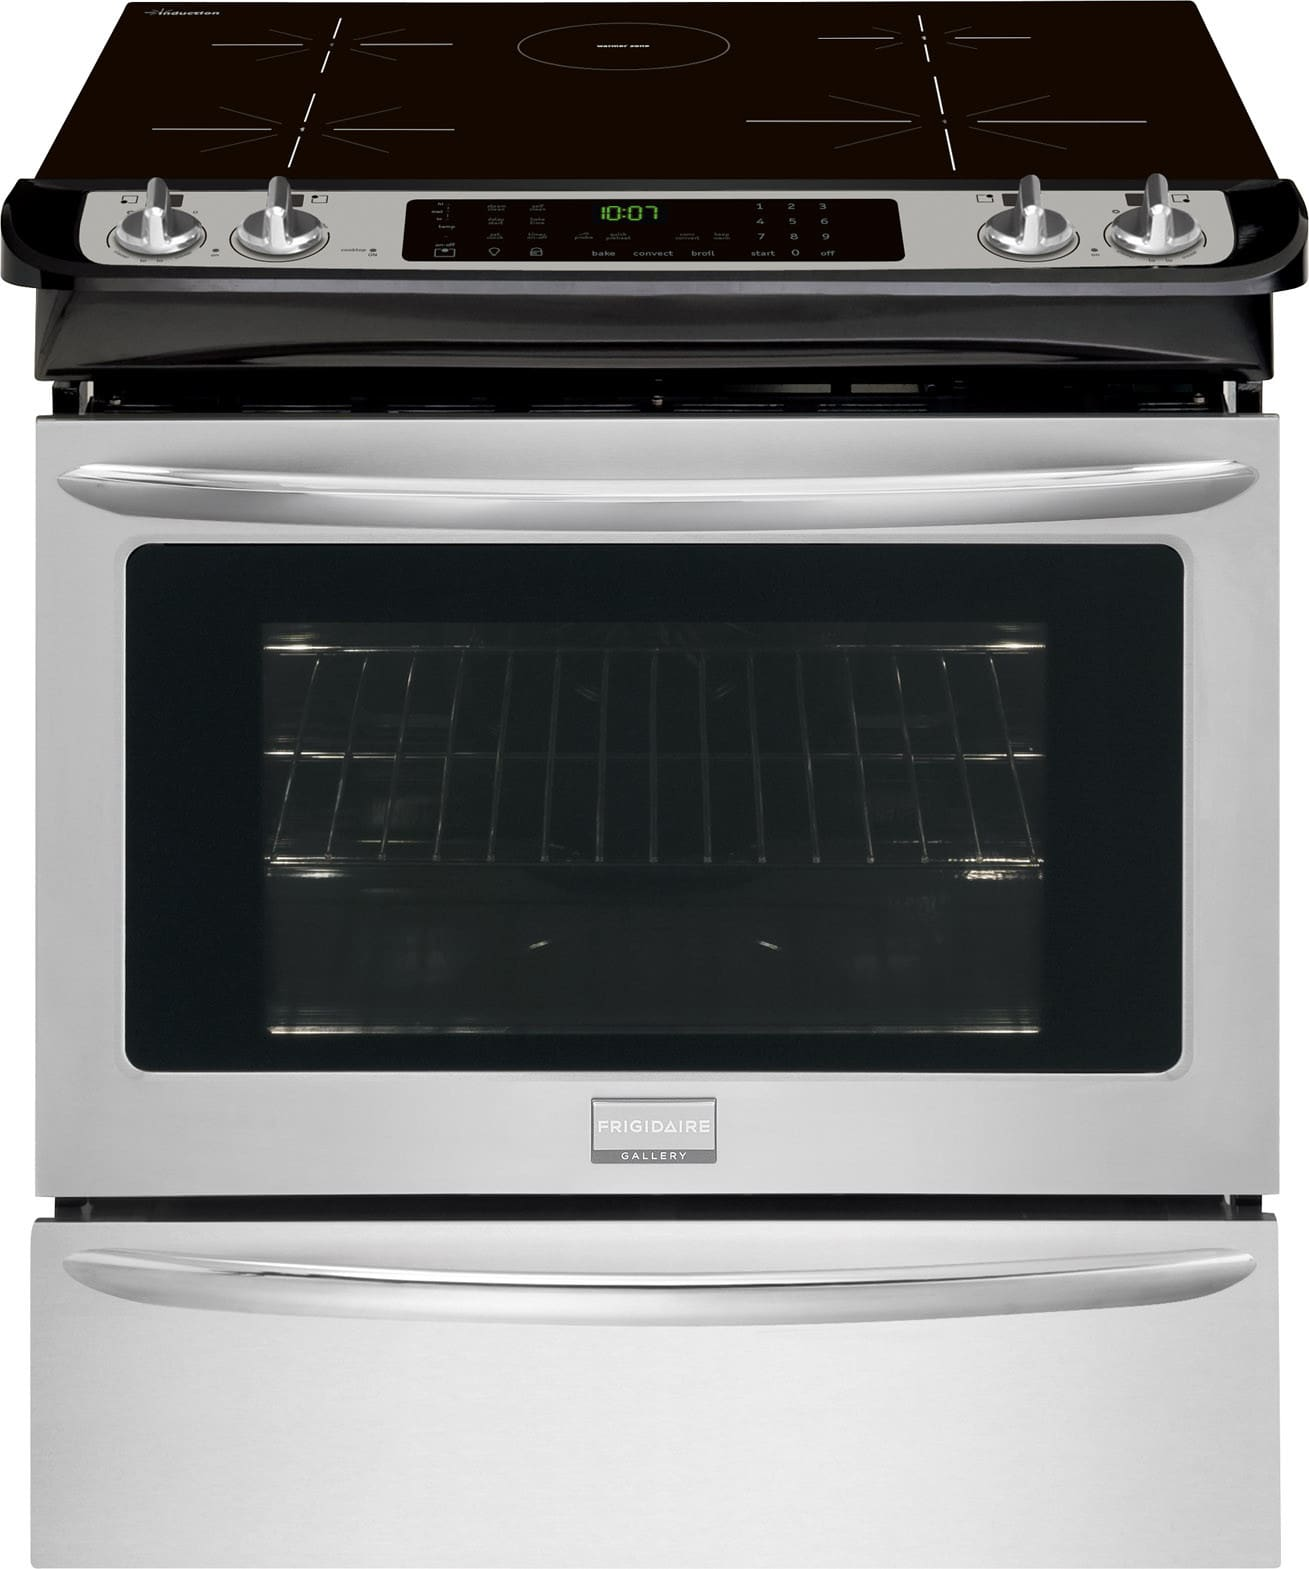 Frigidaire FGIS3065PF 30 Inch Slide In Induction Electric Range with